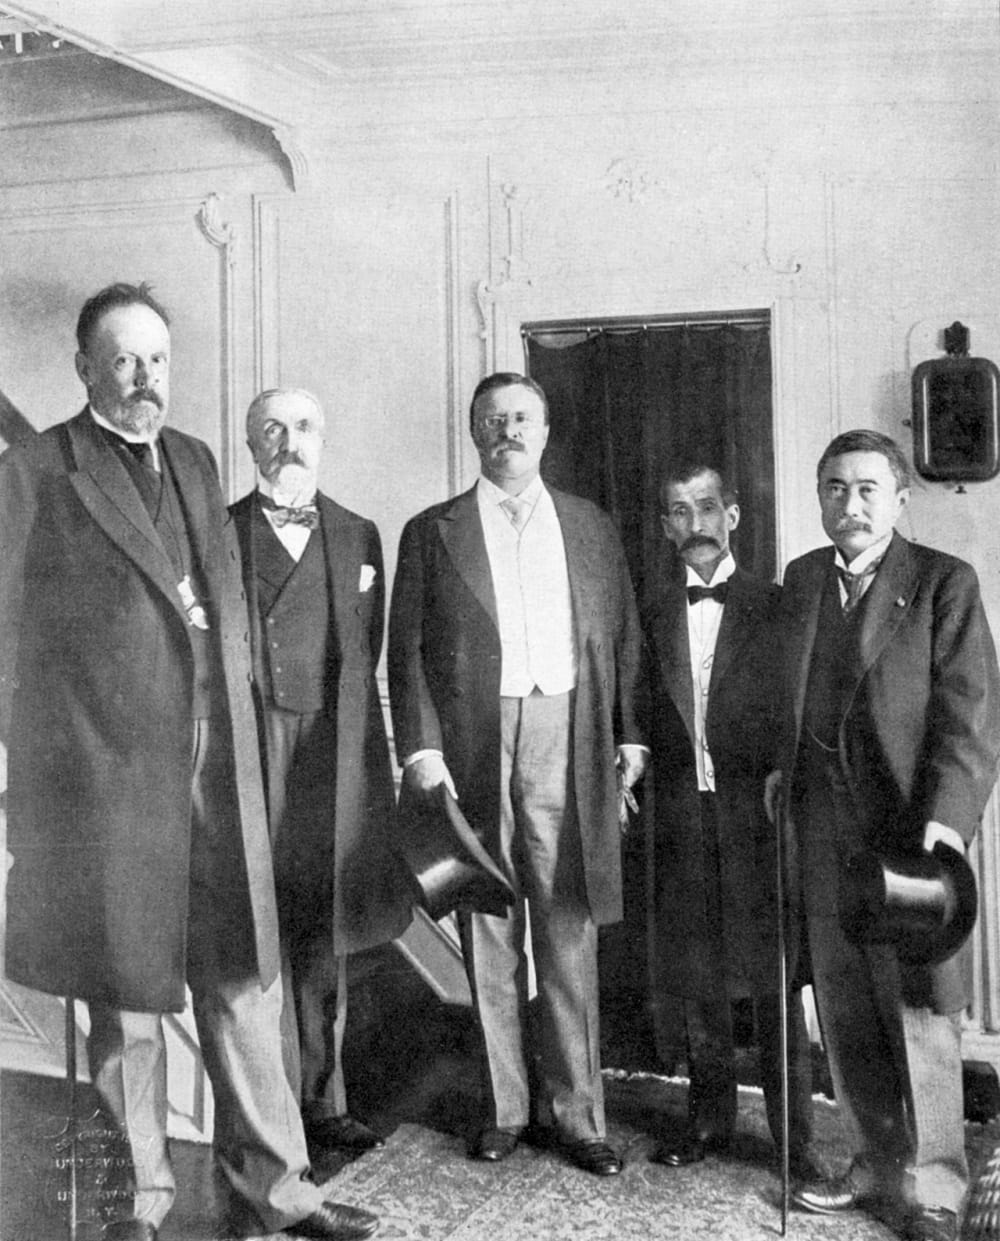 16. Theodore Roosevelt with Russian and Japanese Dignitaries